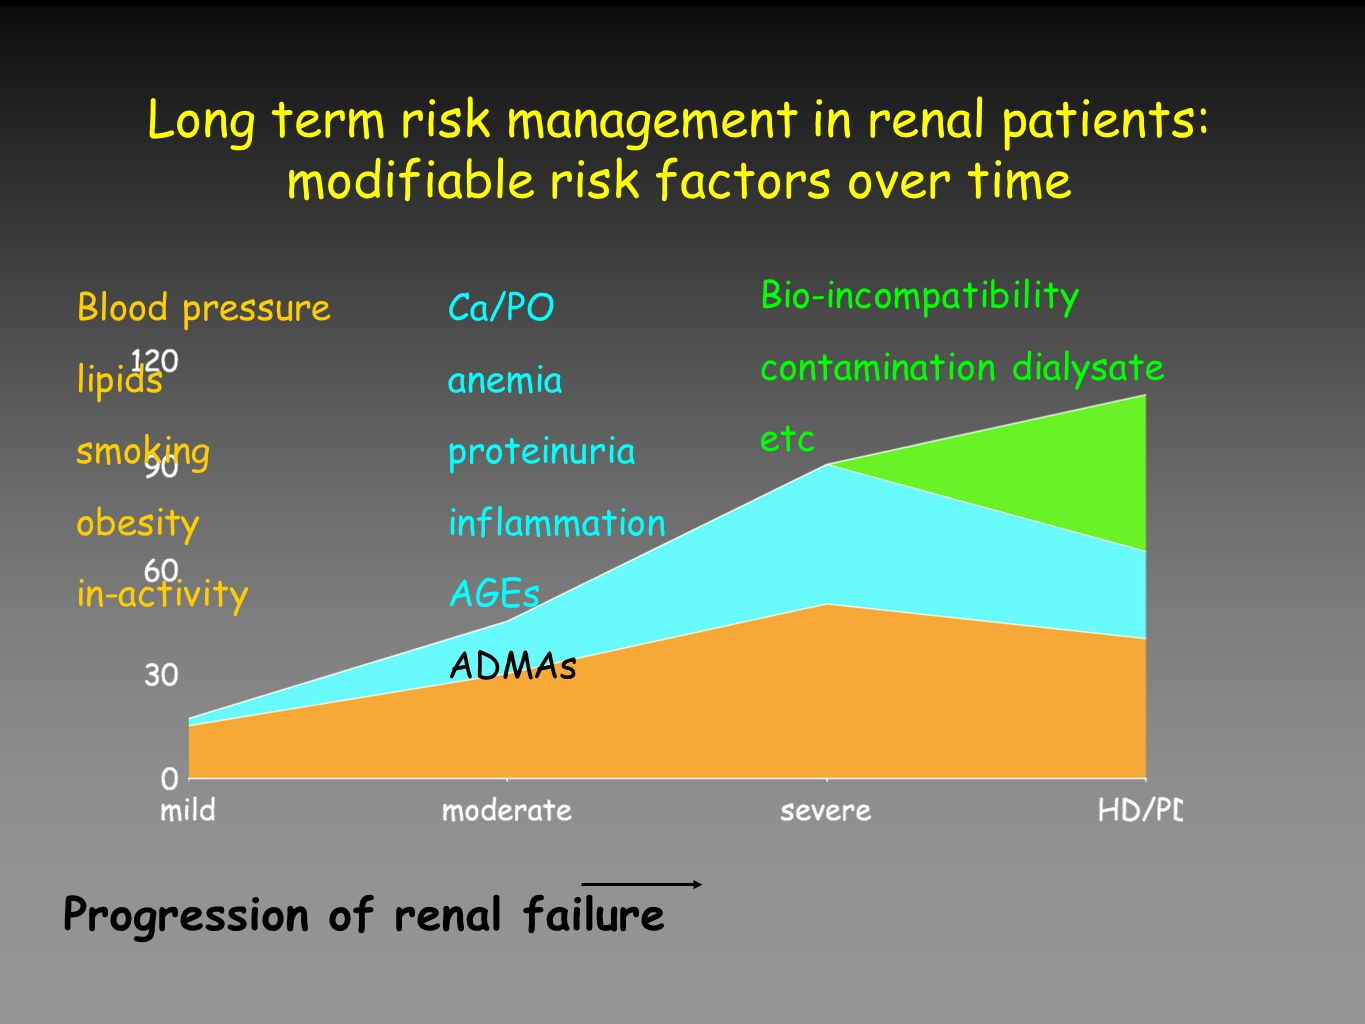 Long term risk management in renal patients: modifiable risk factors over time